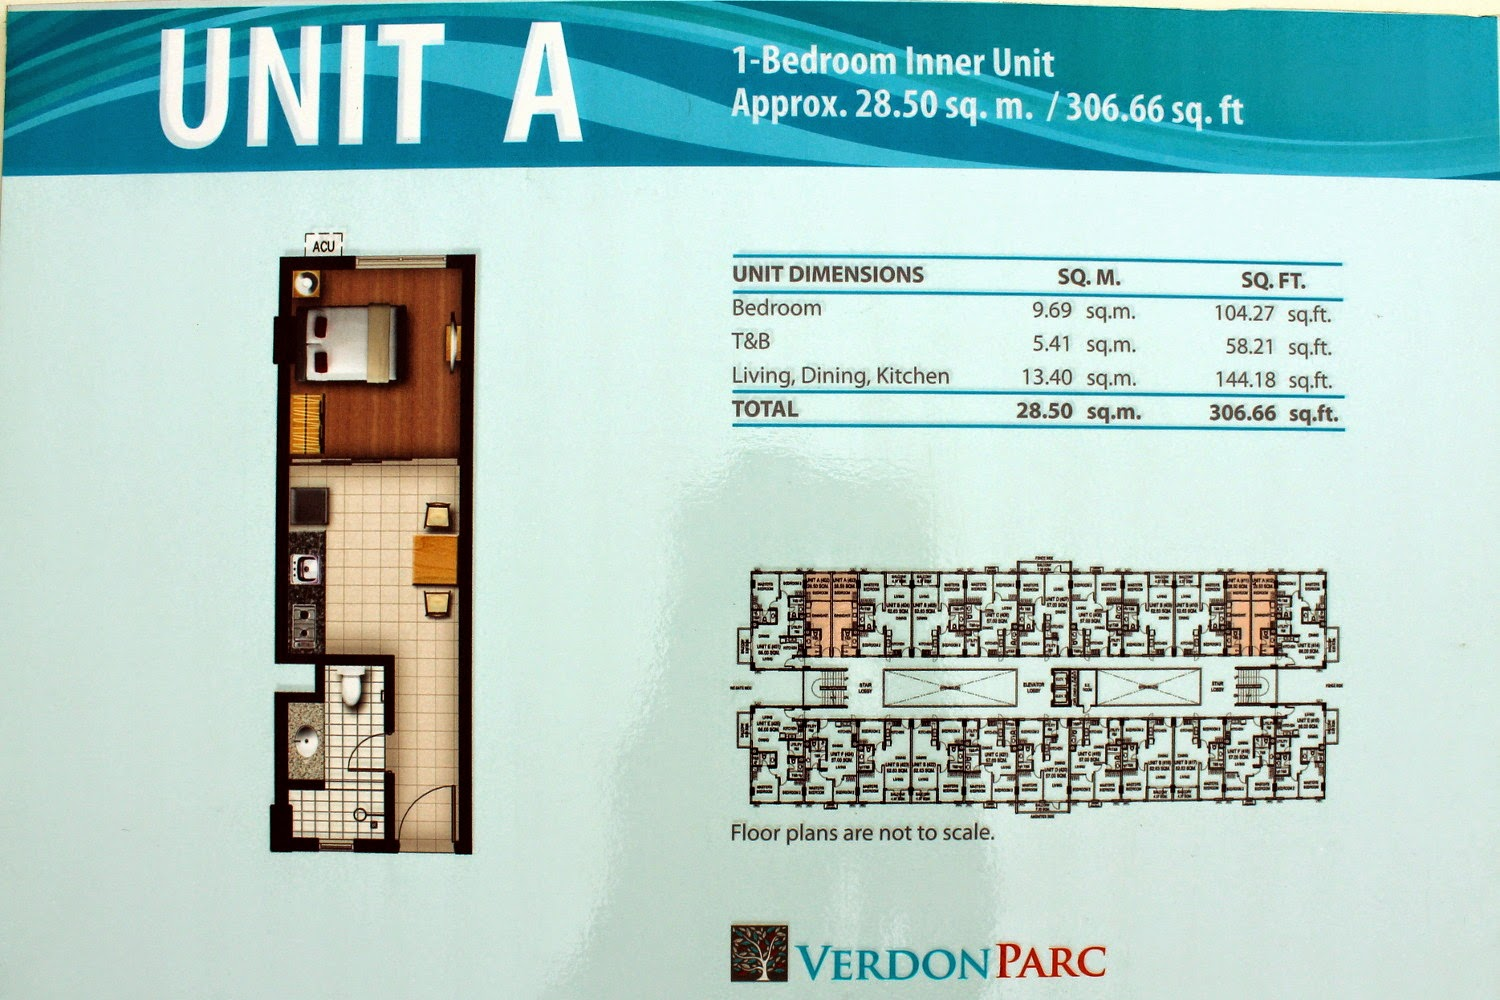 Verdon Parc Unit A (1-Bedroom Inner)